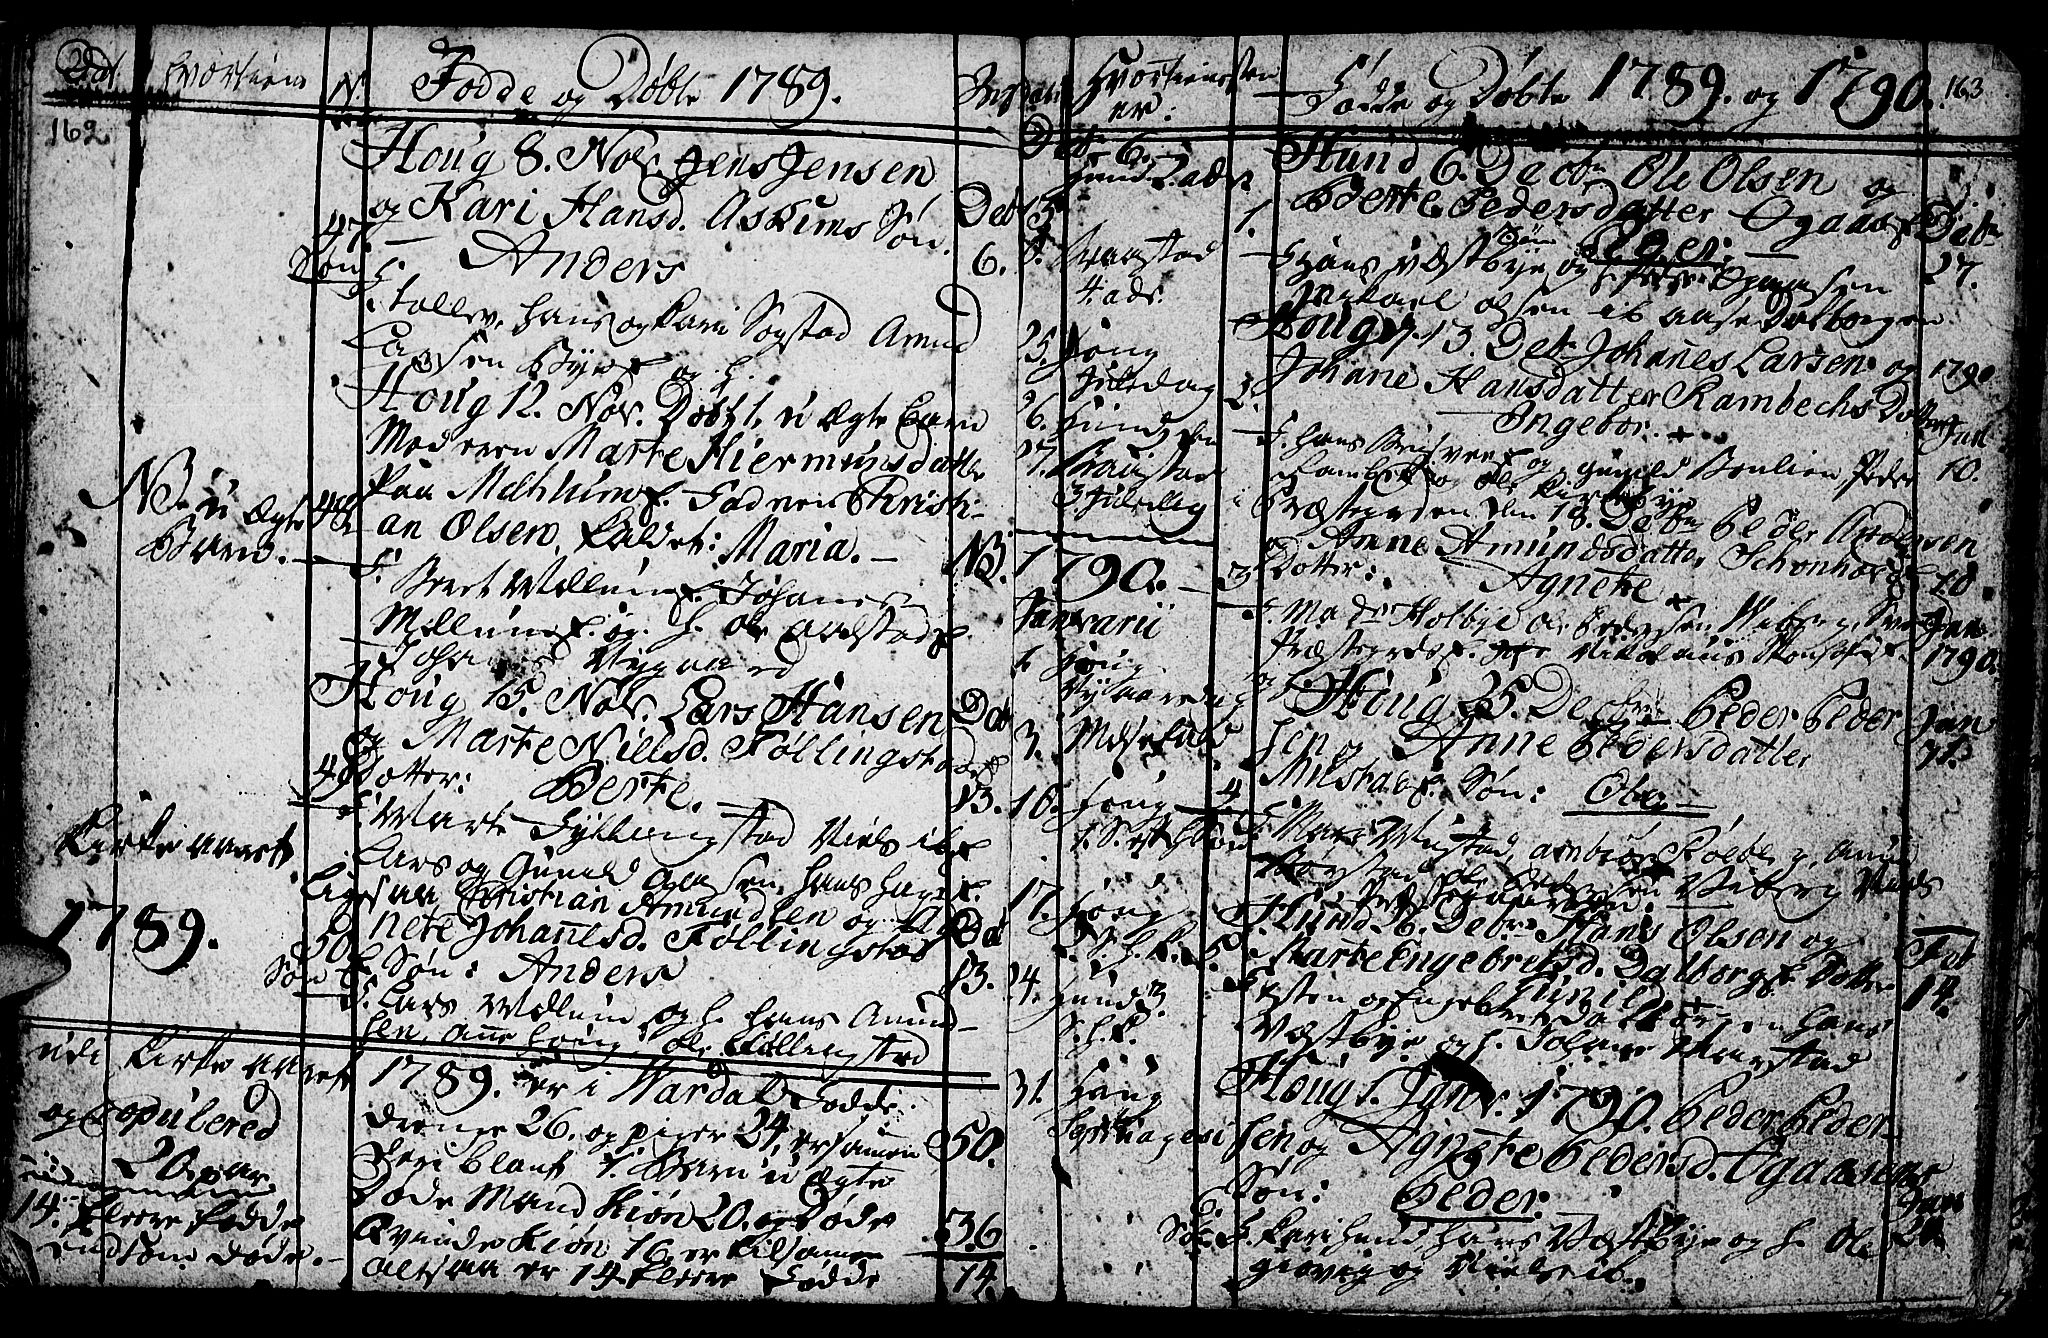 SAH, Vardal prestekontor, H/Ha/Hab/L0001: Parish register (copy) no. 1, 1771-1790, p. 162-163